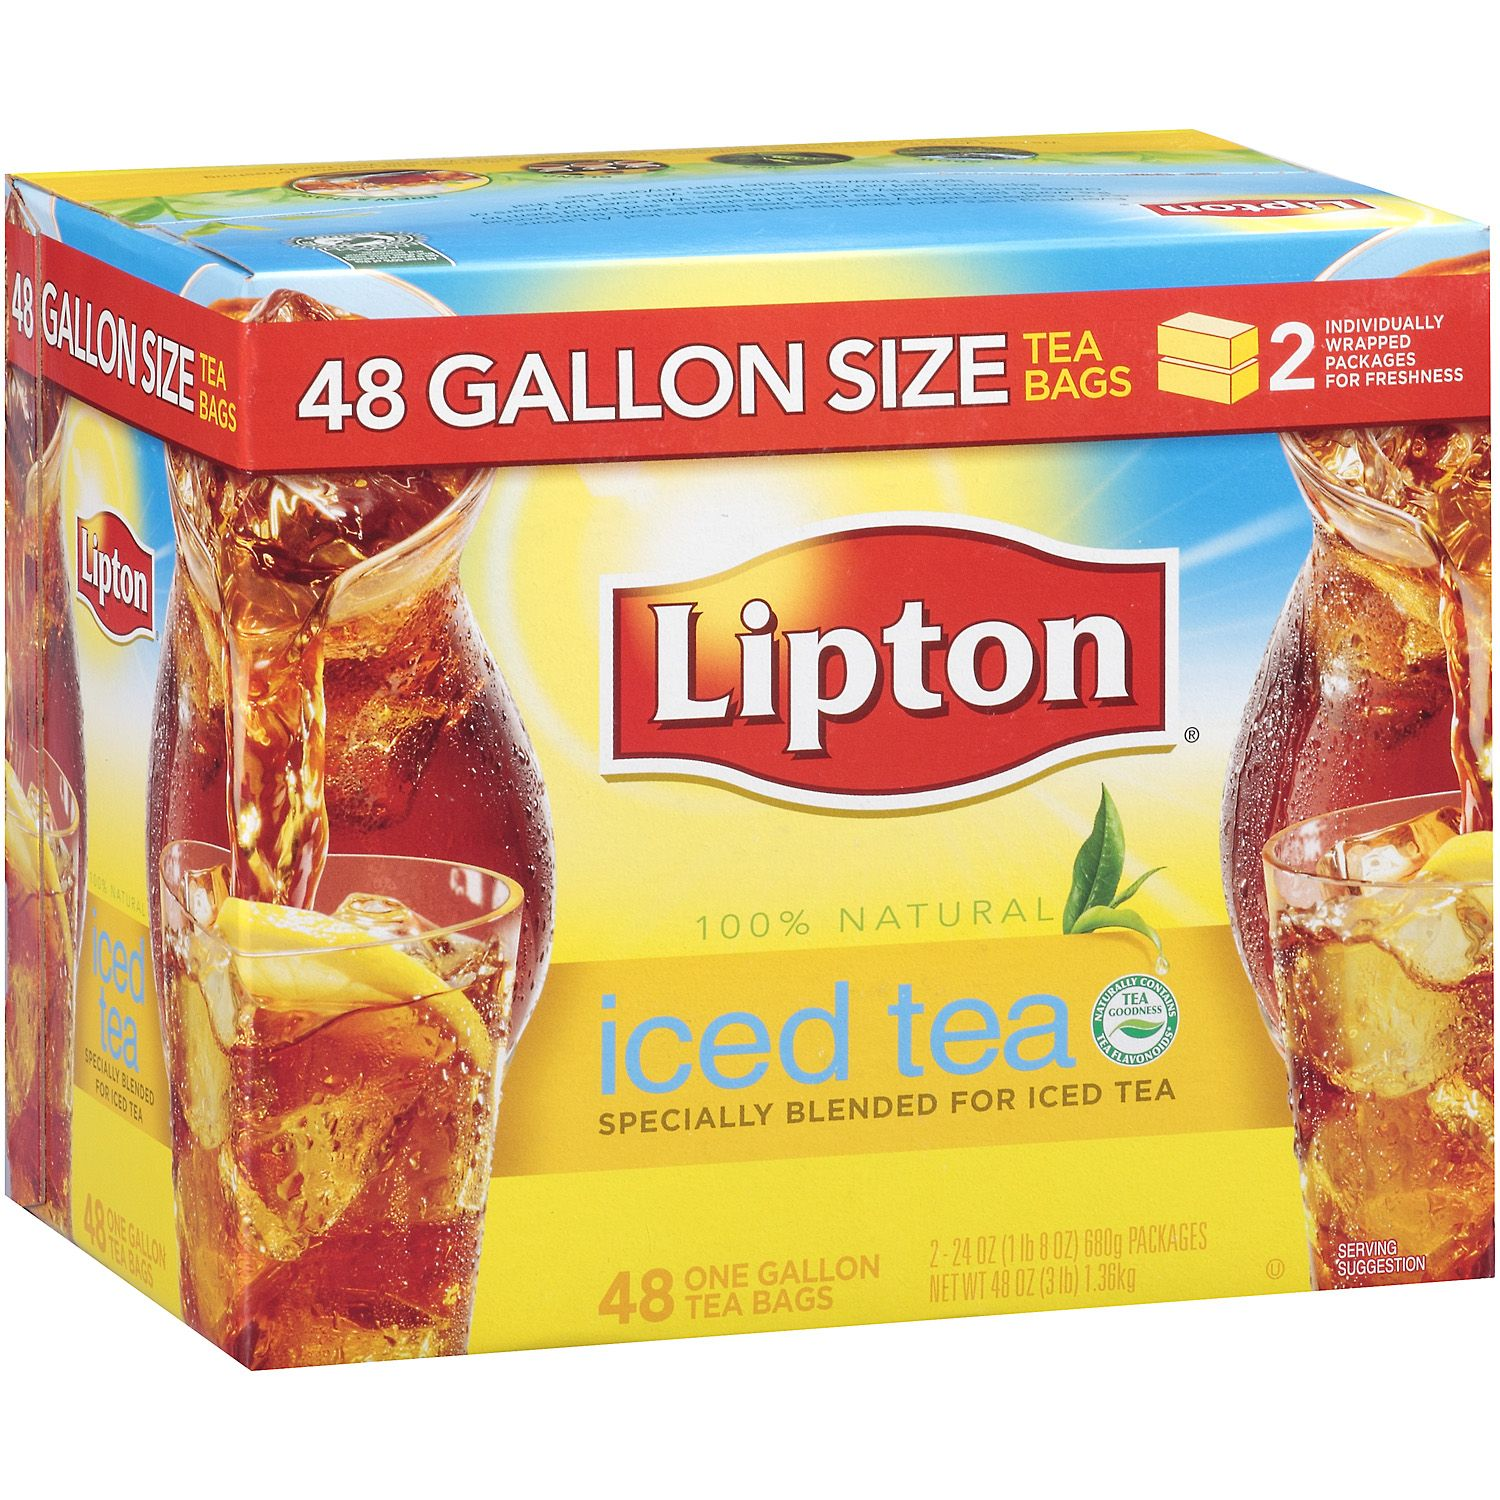 LIPTON ICED TEA GALLON SIZE TEA BAGS 48CS